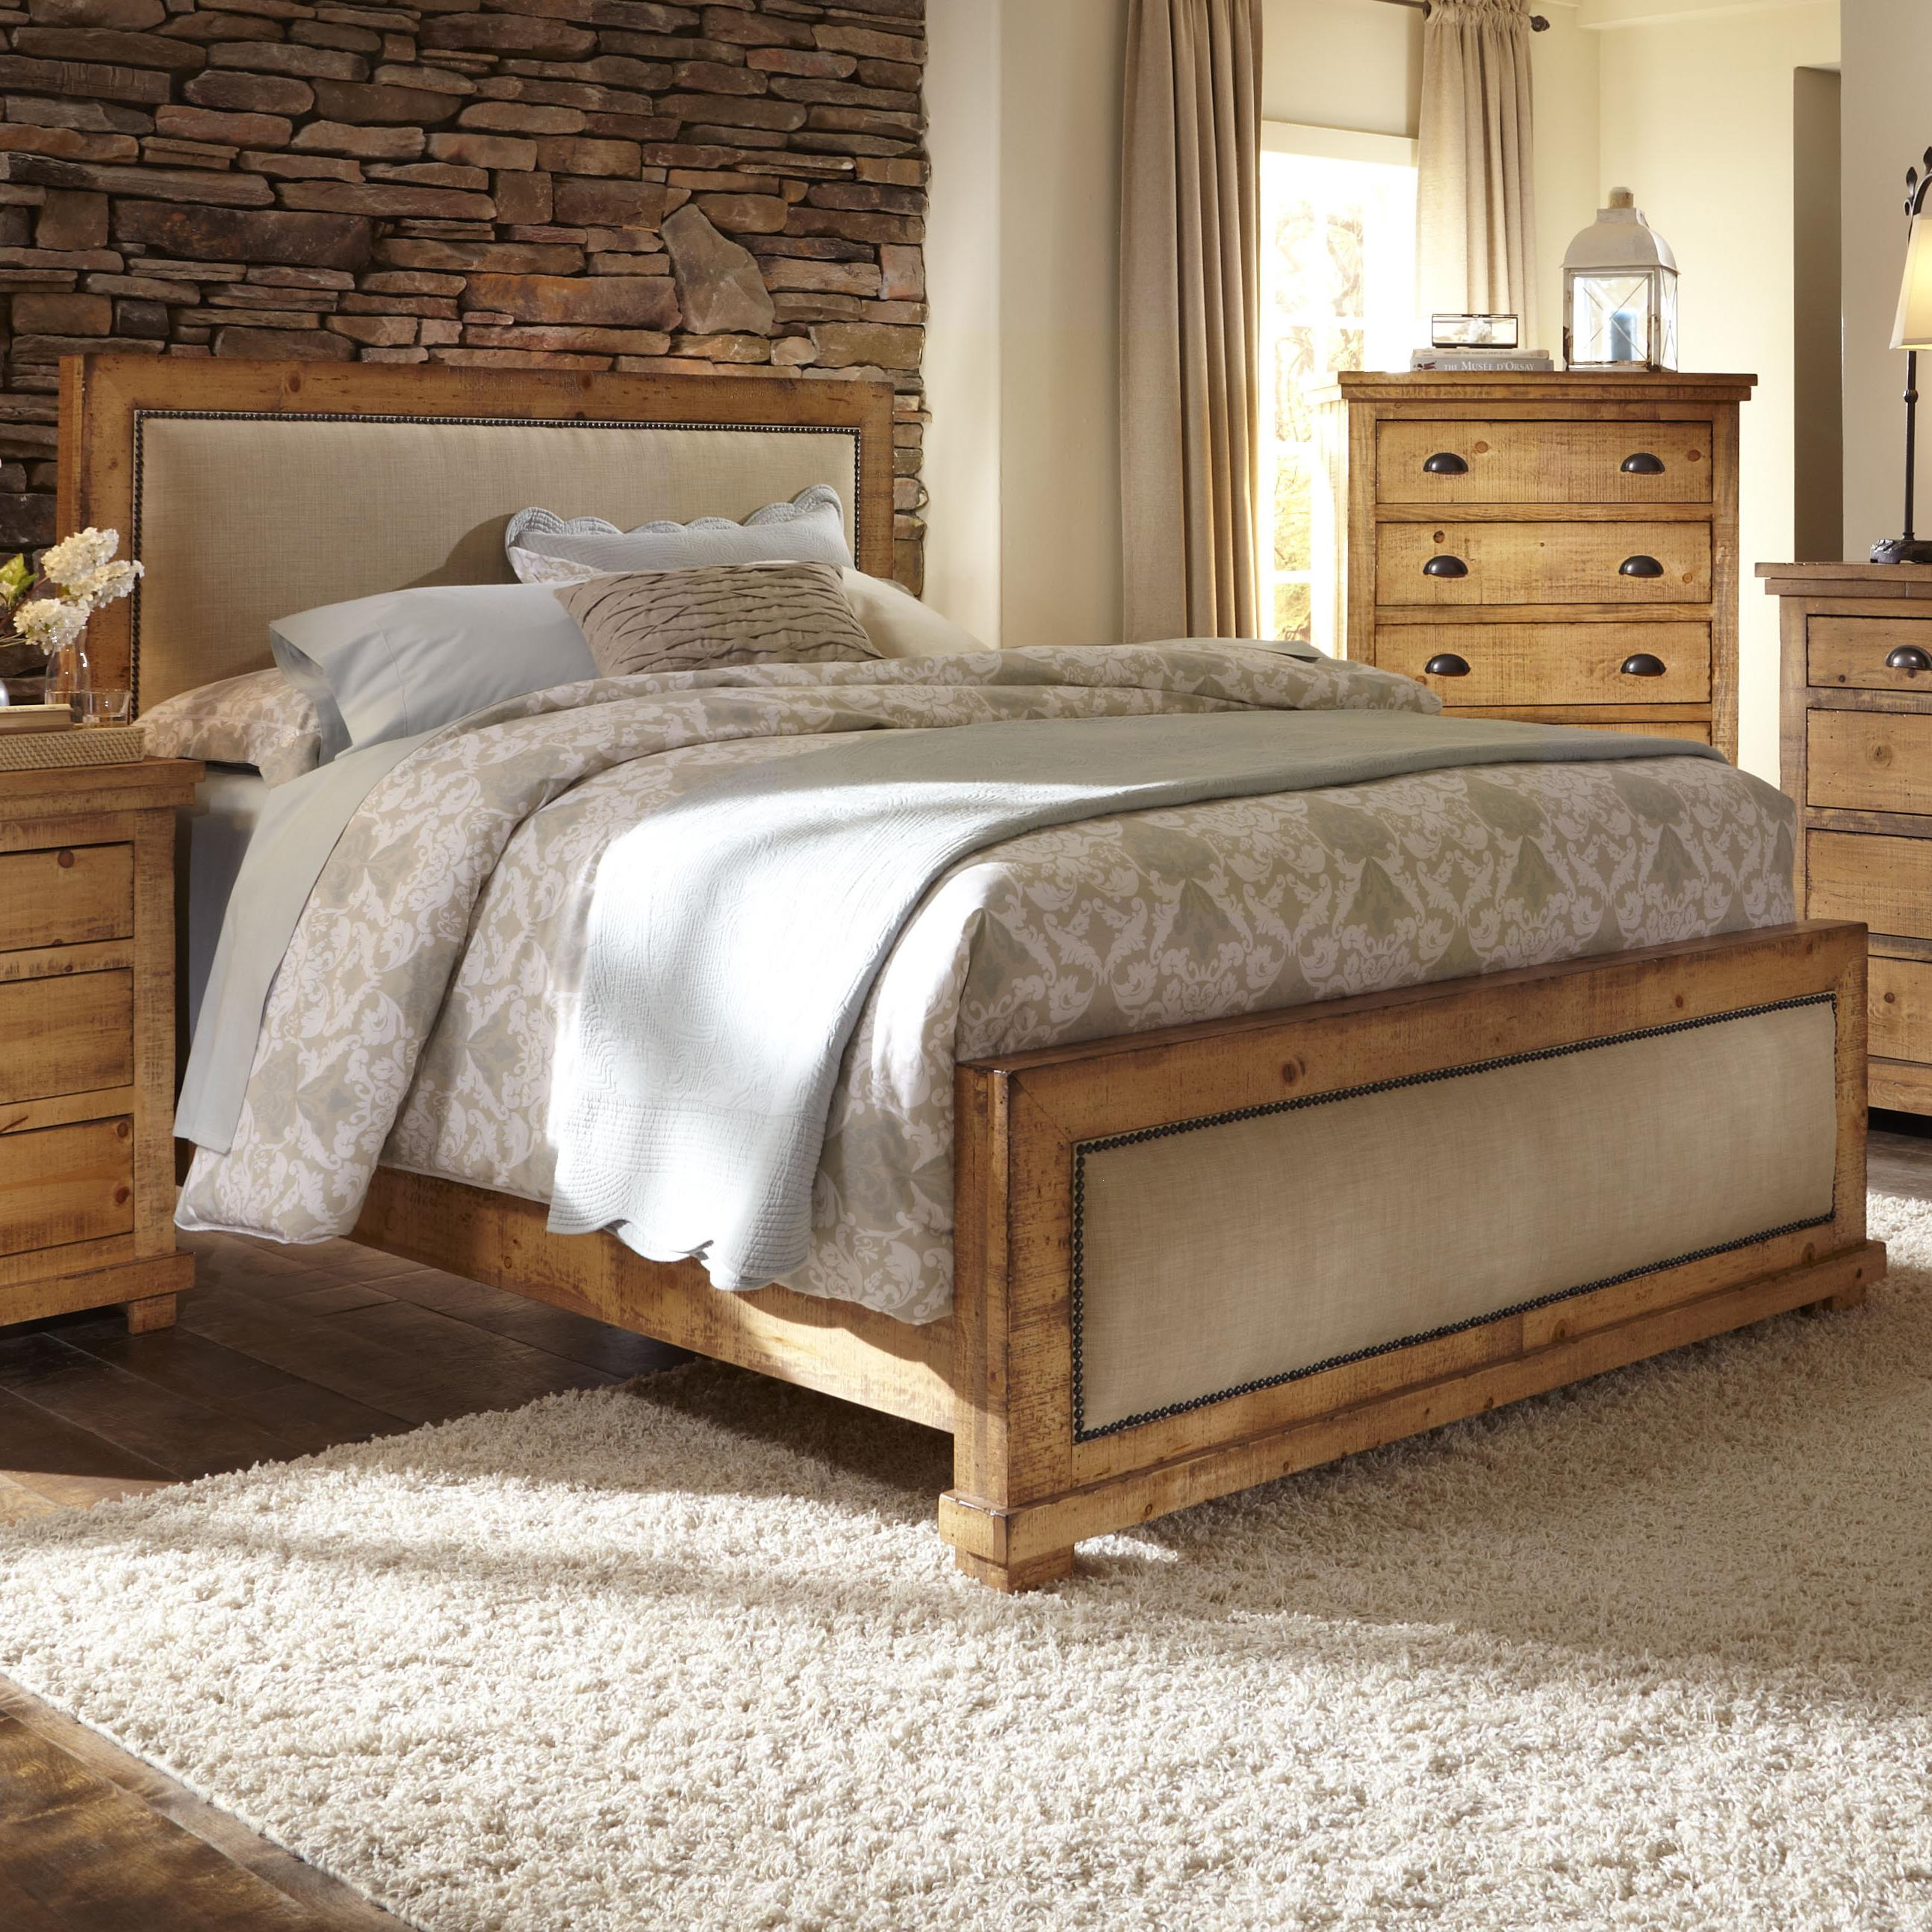 Progressive Furniture Willow King Upholstered Bed With Distressed Pine Frame Miskelly